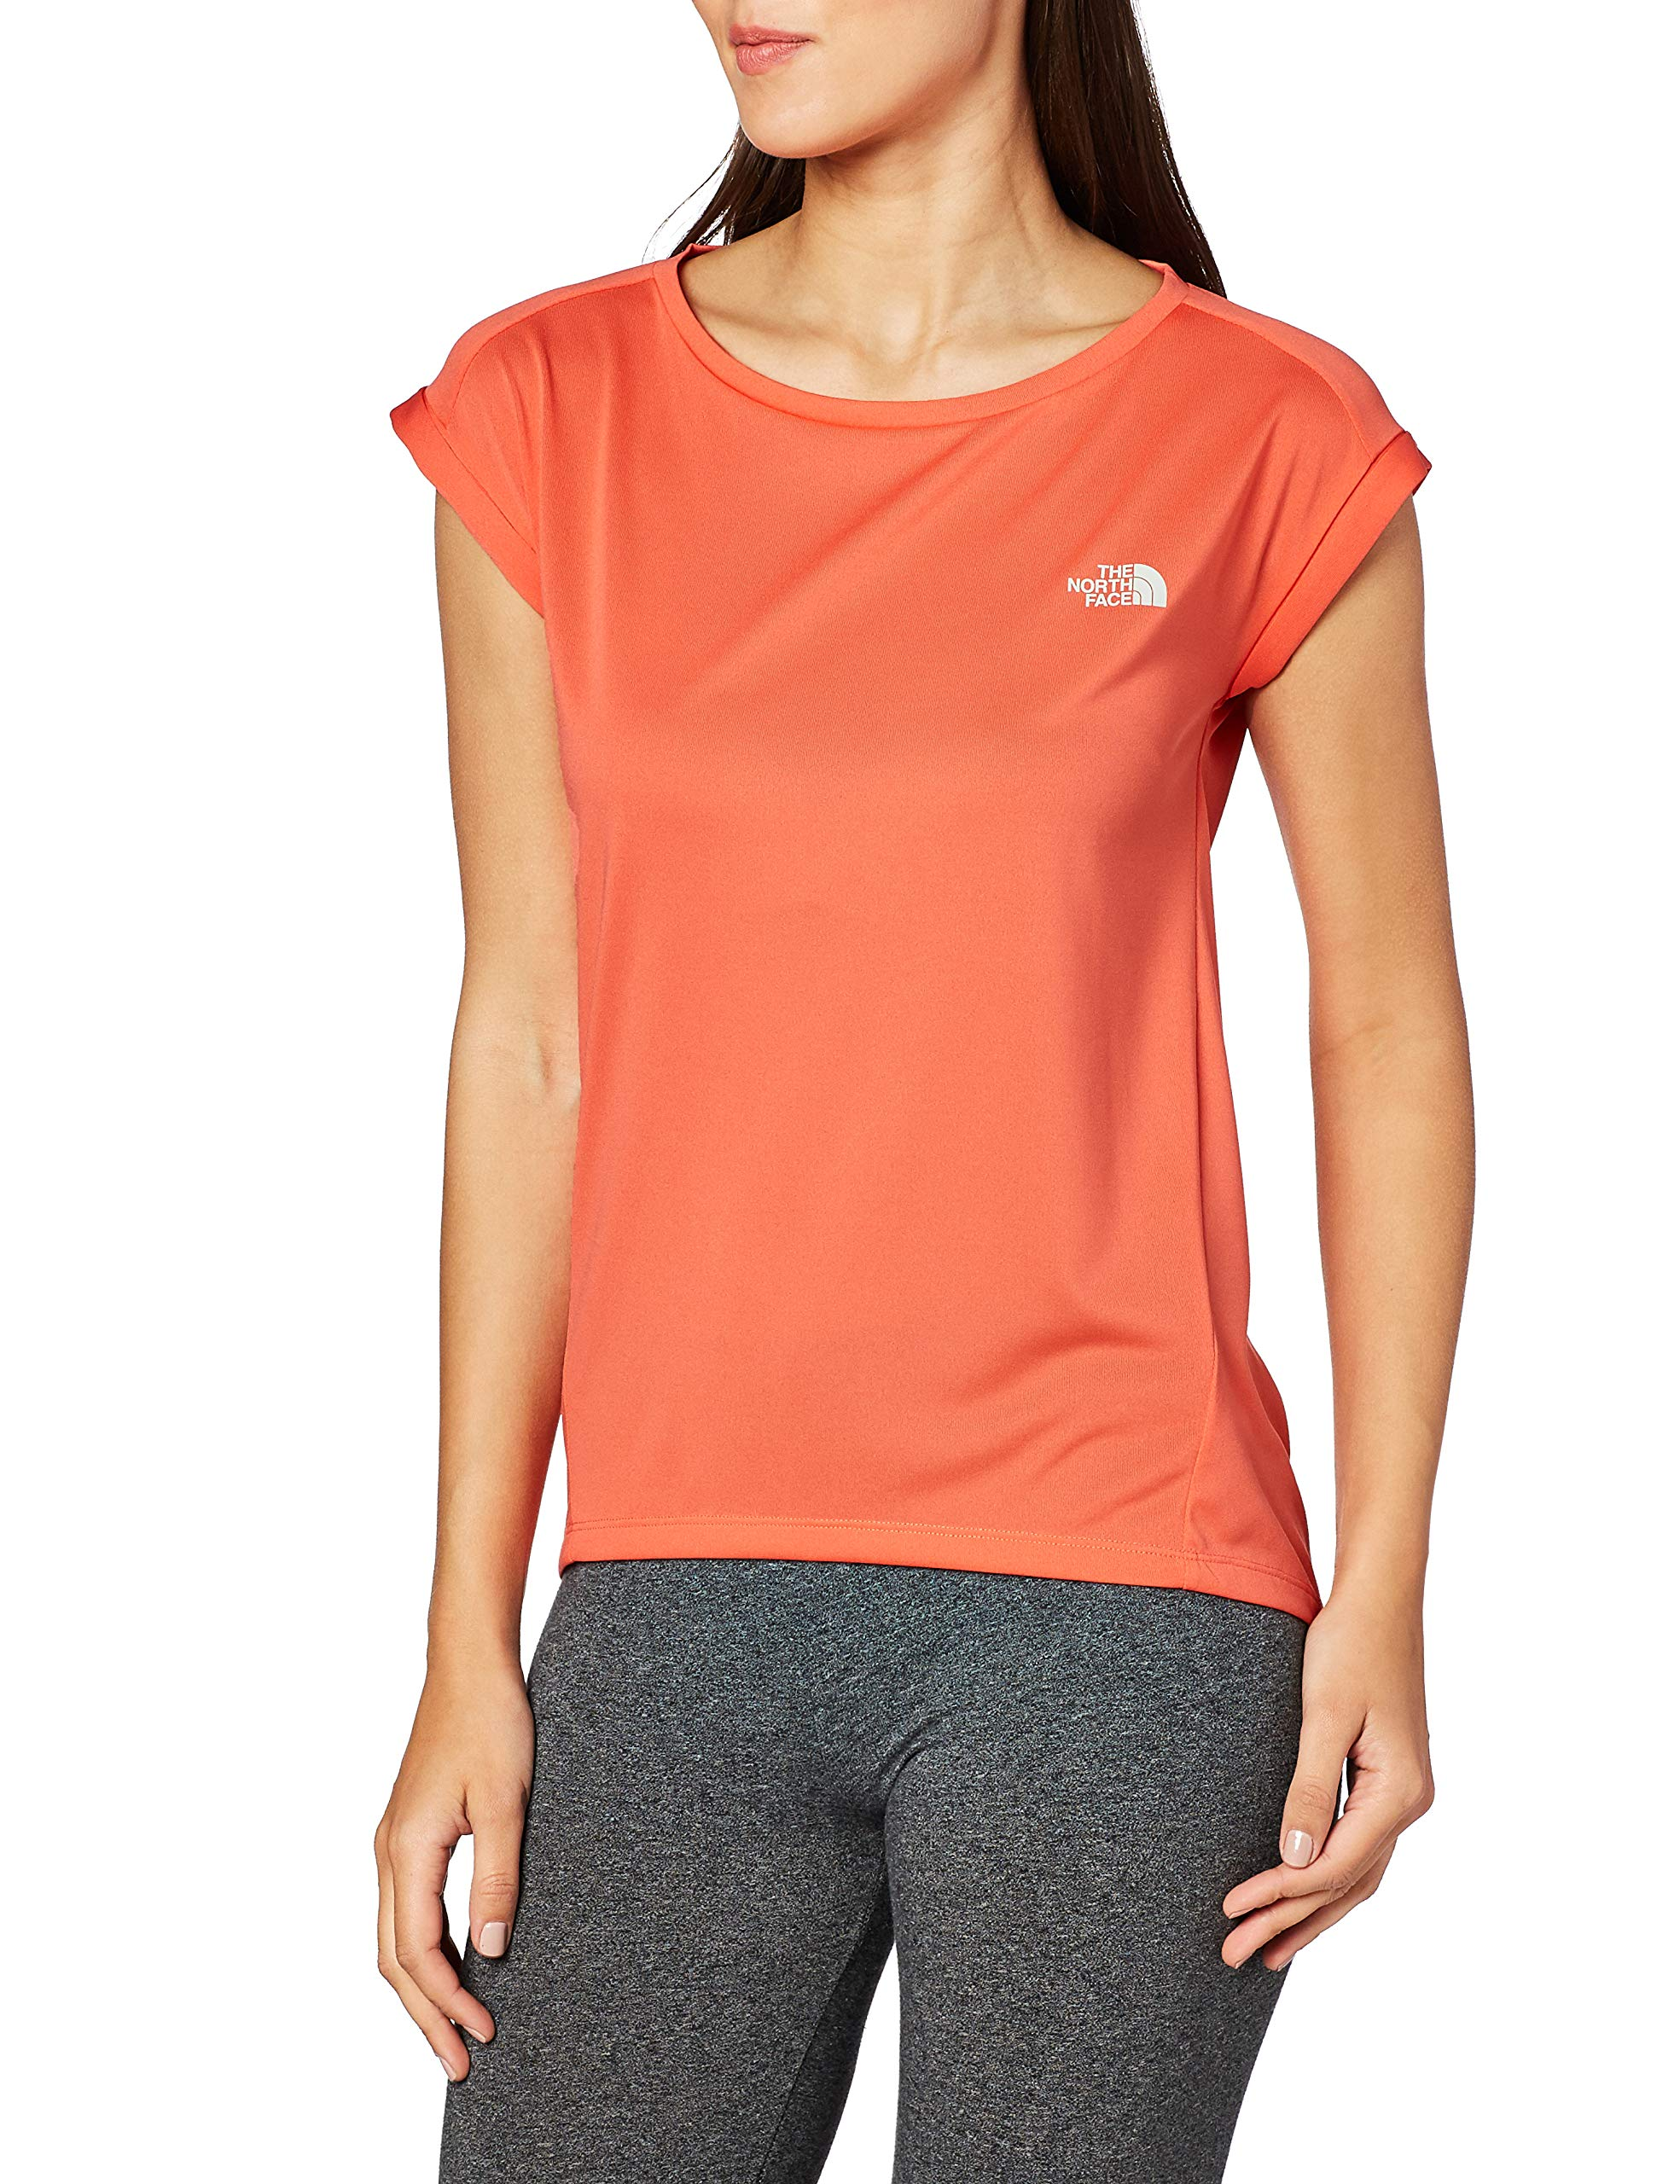 The North Face Tanken Top sin Mangas Mujer, Radiant Orange Talla XS 2019 Camisa sin Mangas: Amazon.es: Deportes y aire libre